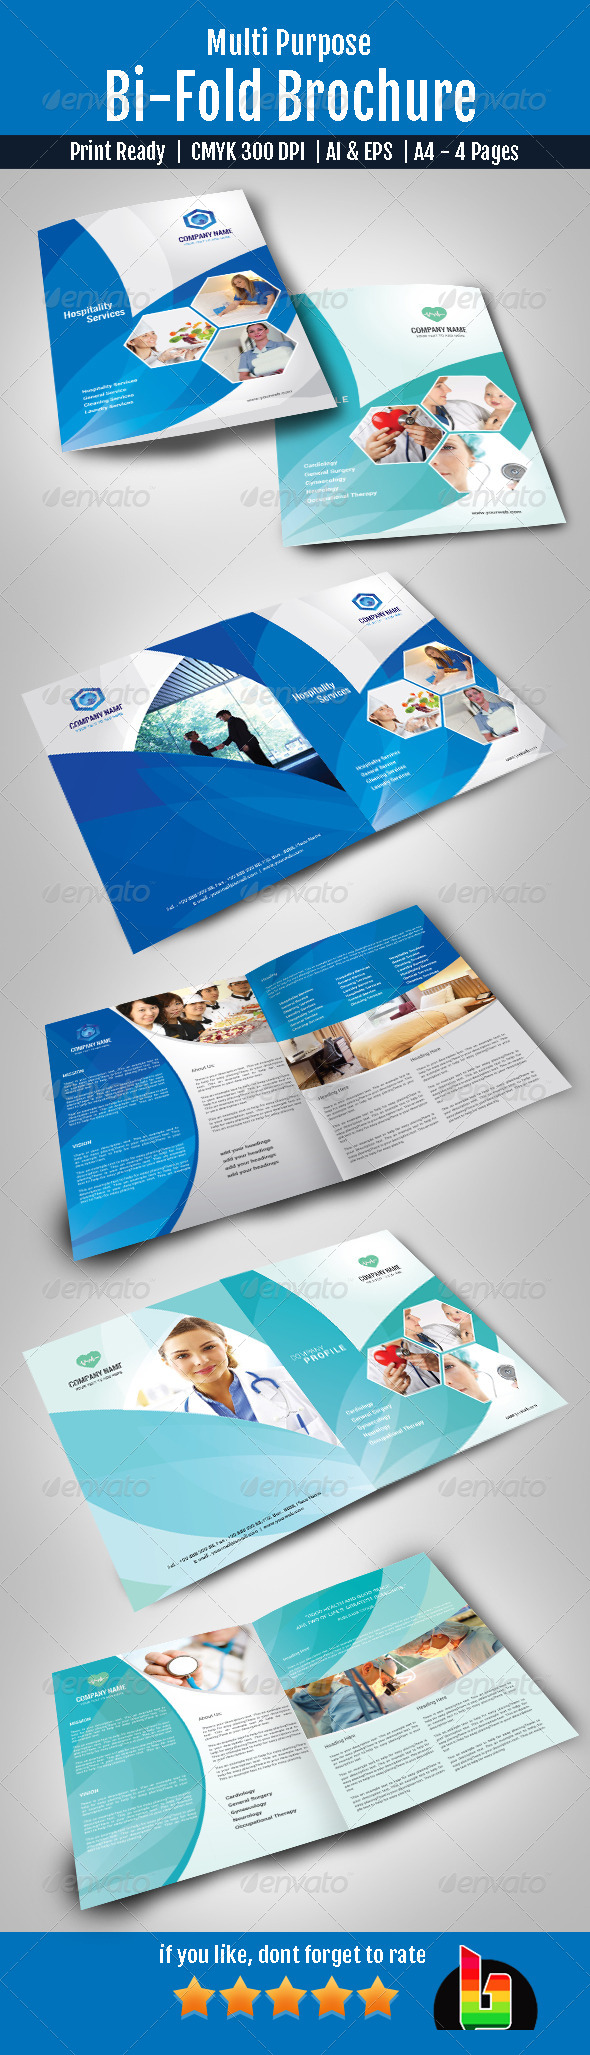 Multi Purpose Bi-Fold Brochure - Corporate Brochures